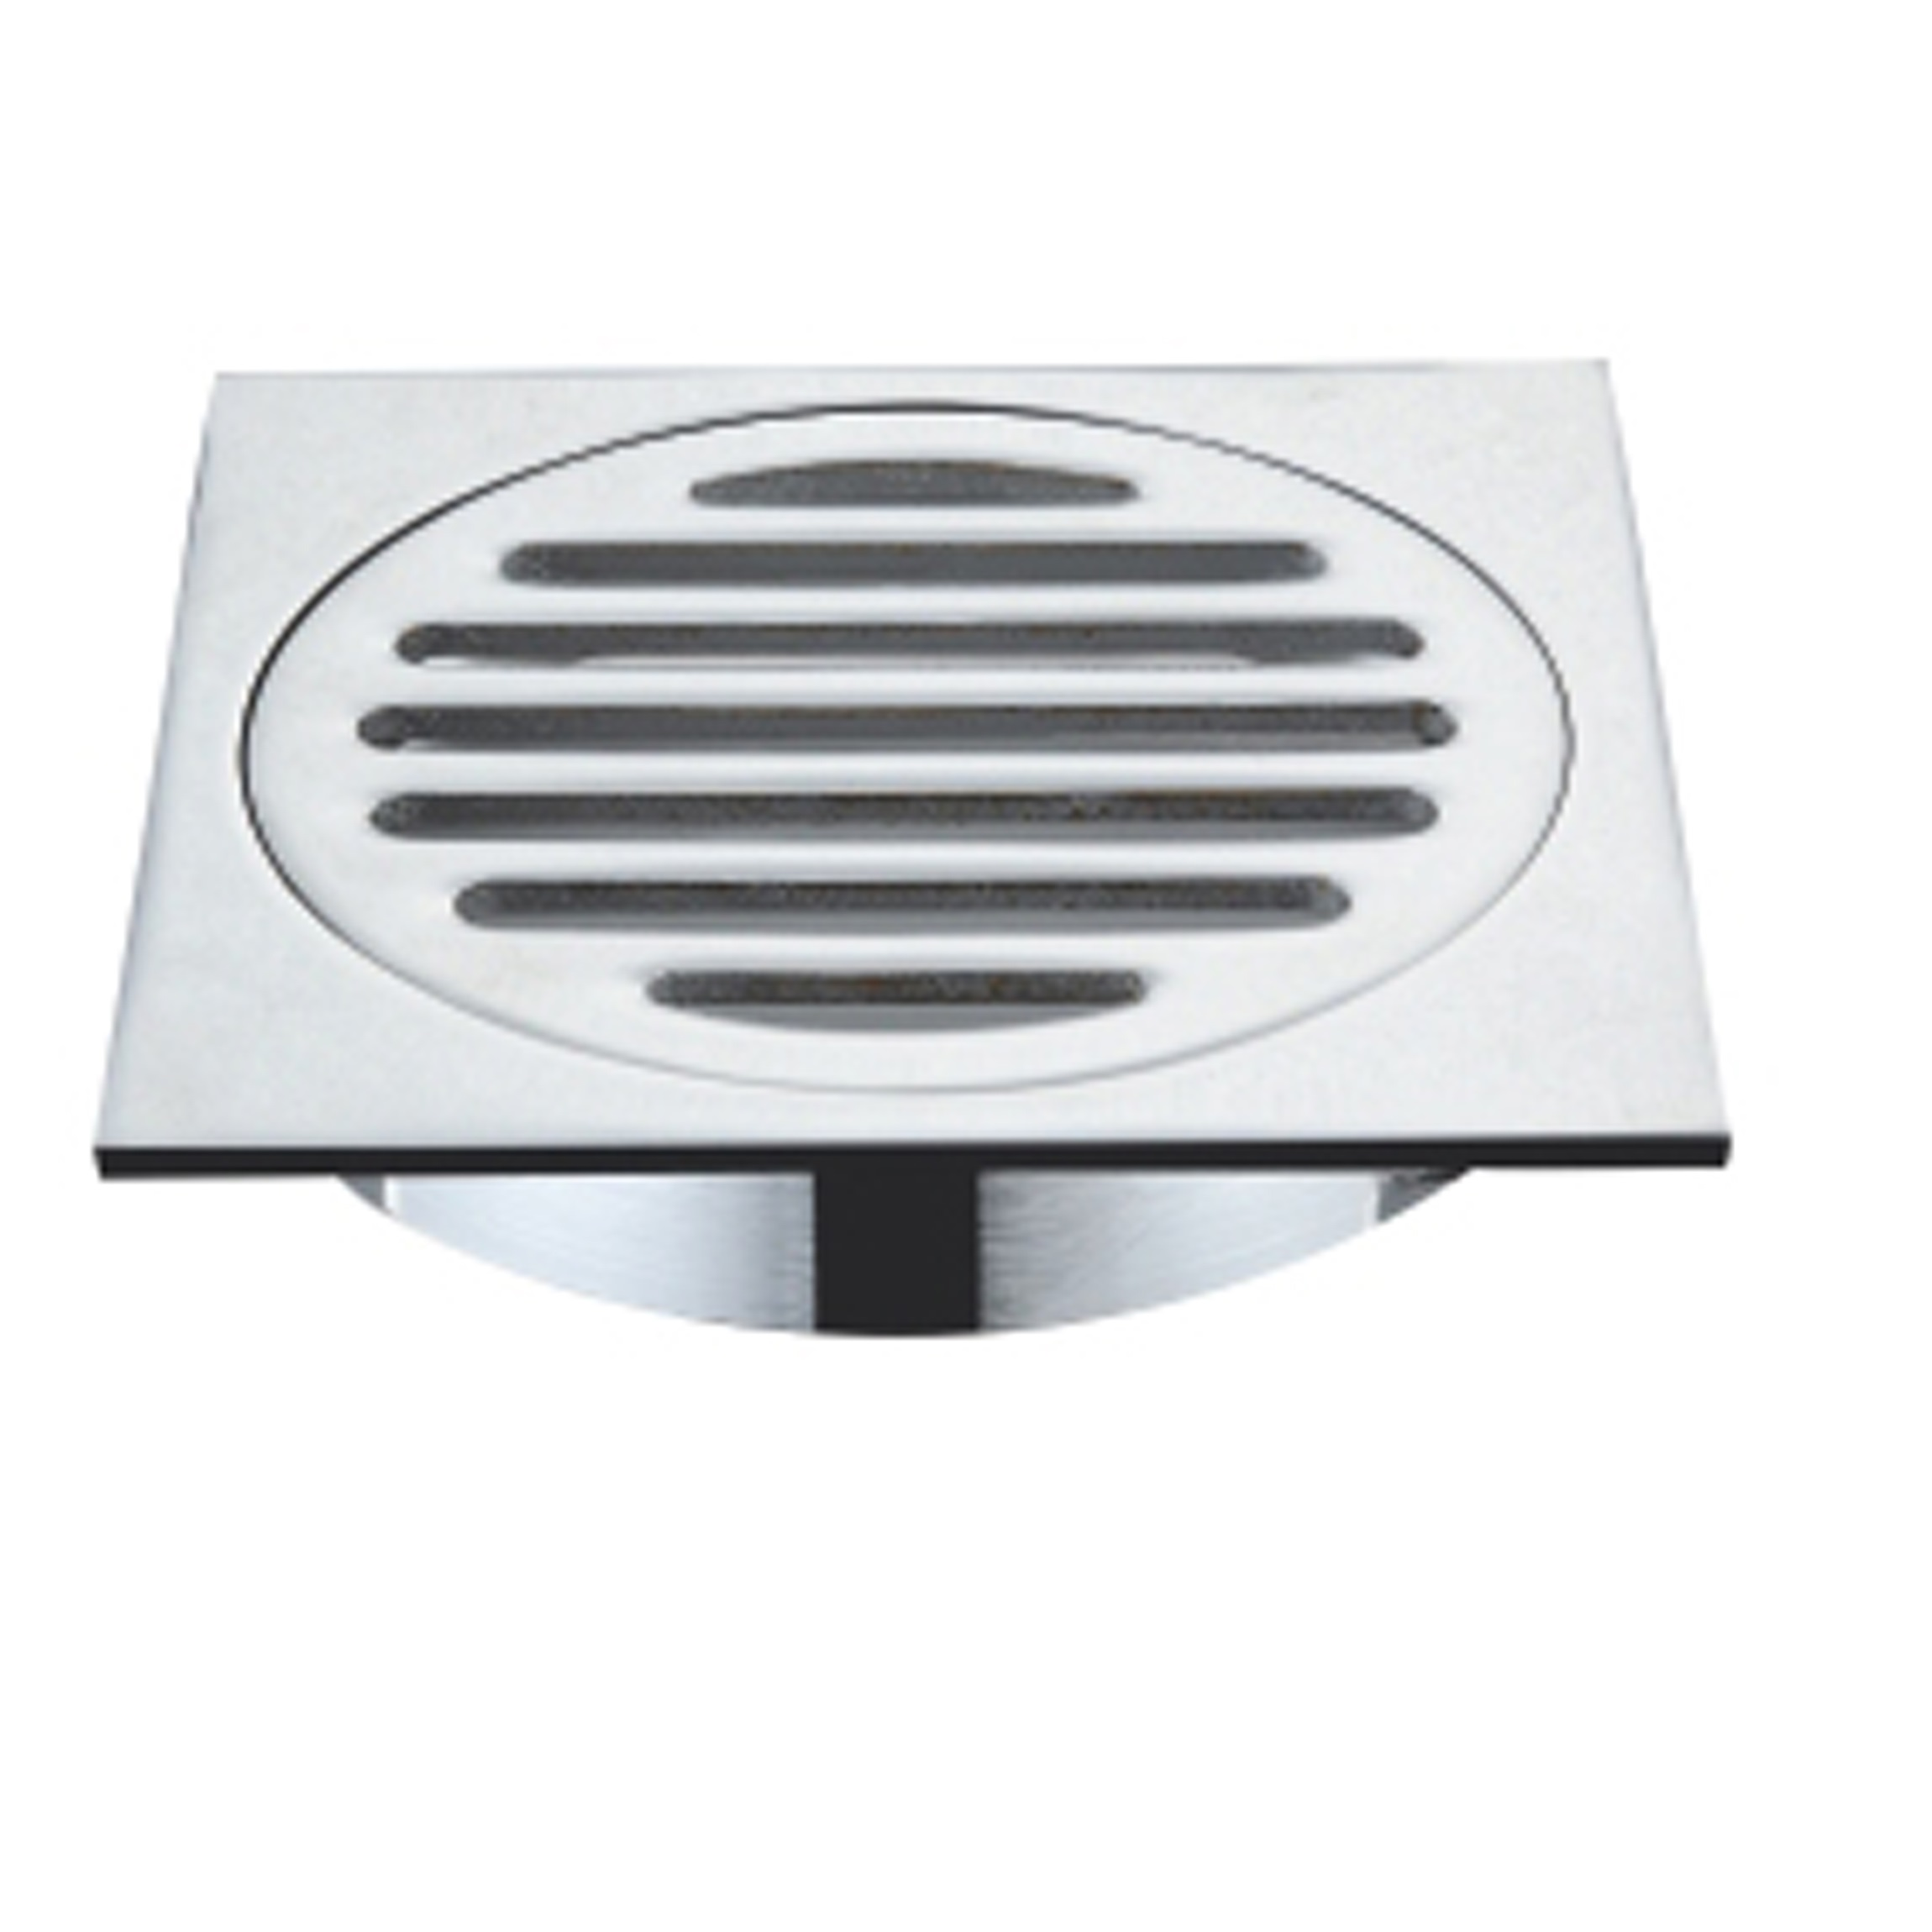 Chrome Finish Square Floor Drain Waste With 110x110x100mm